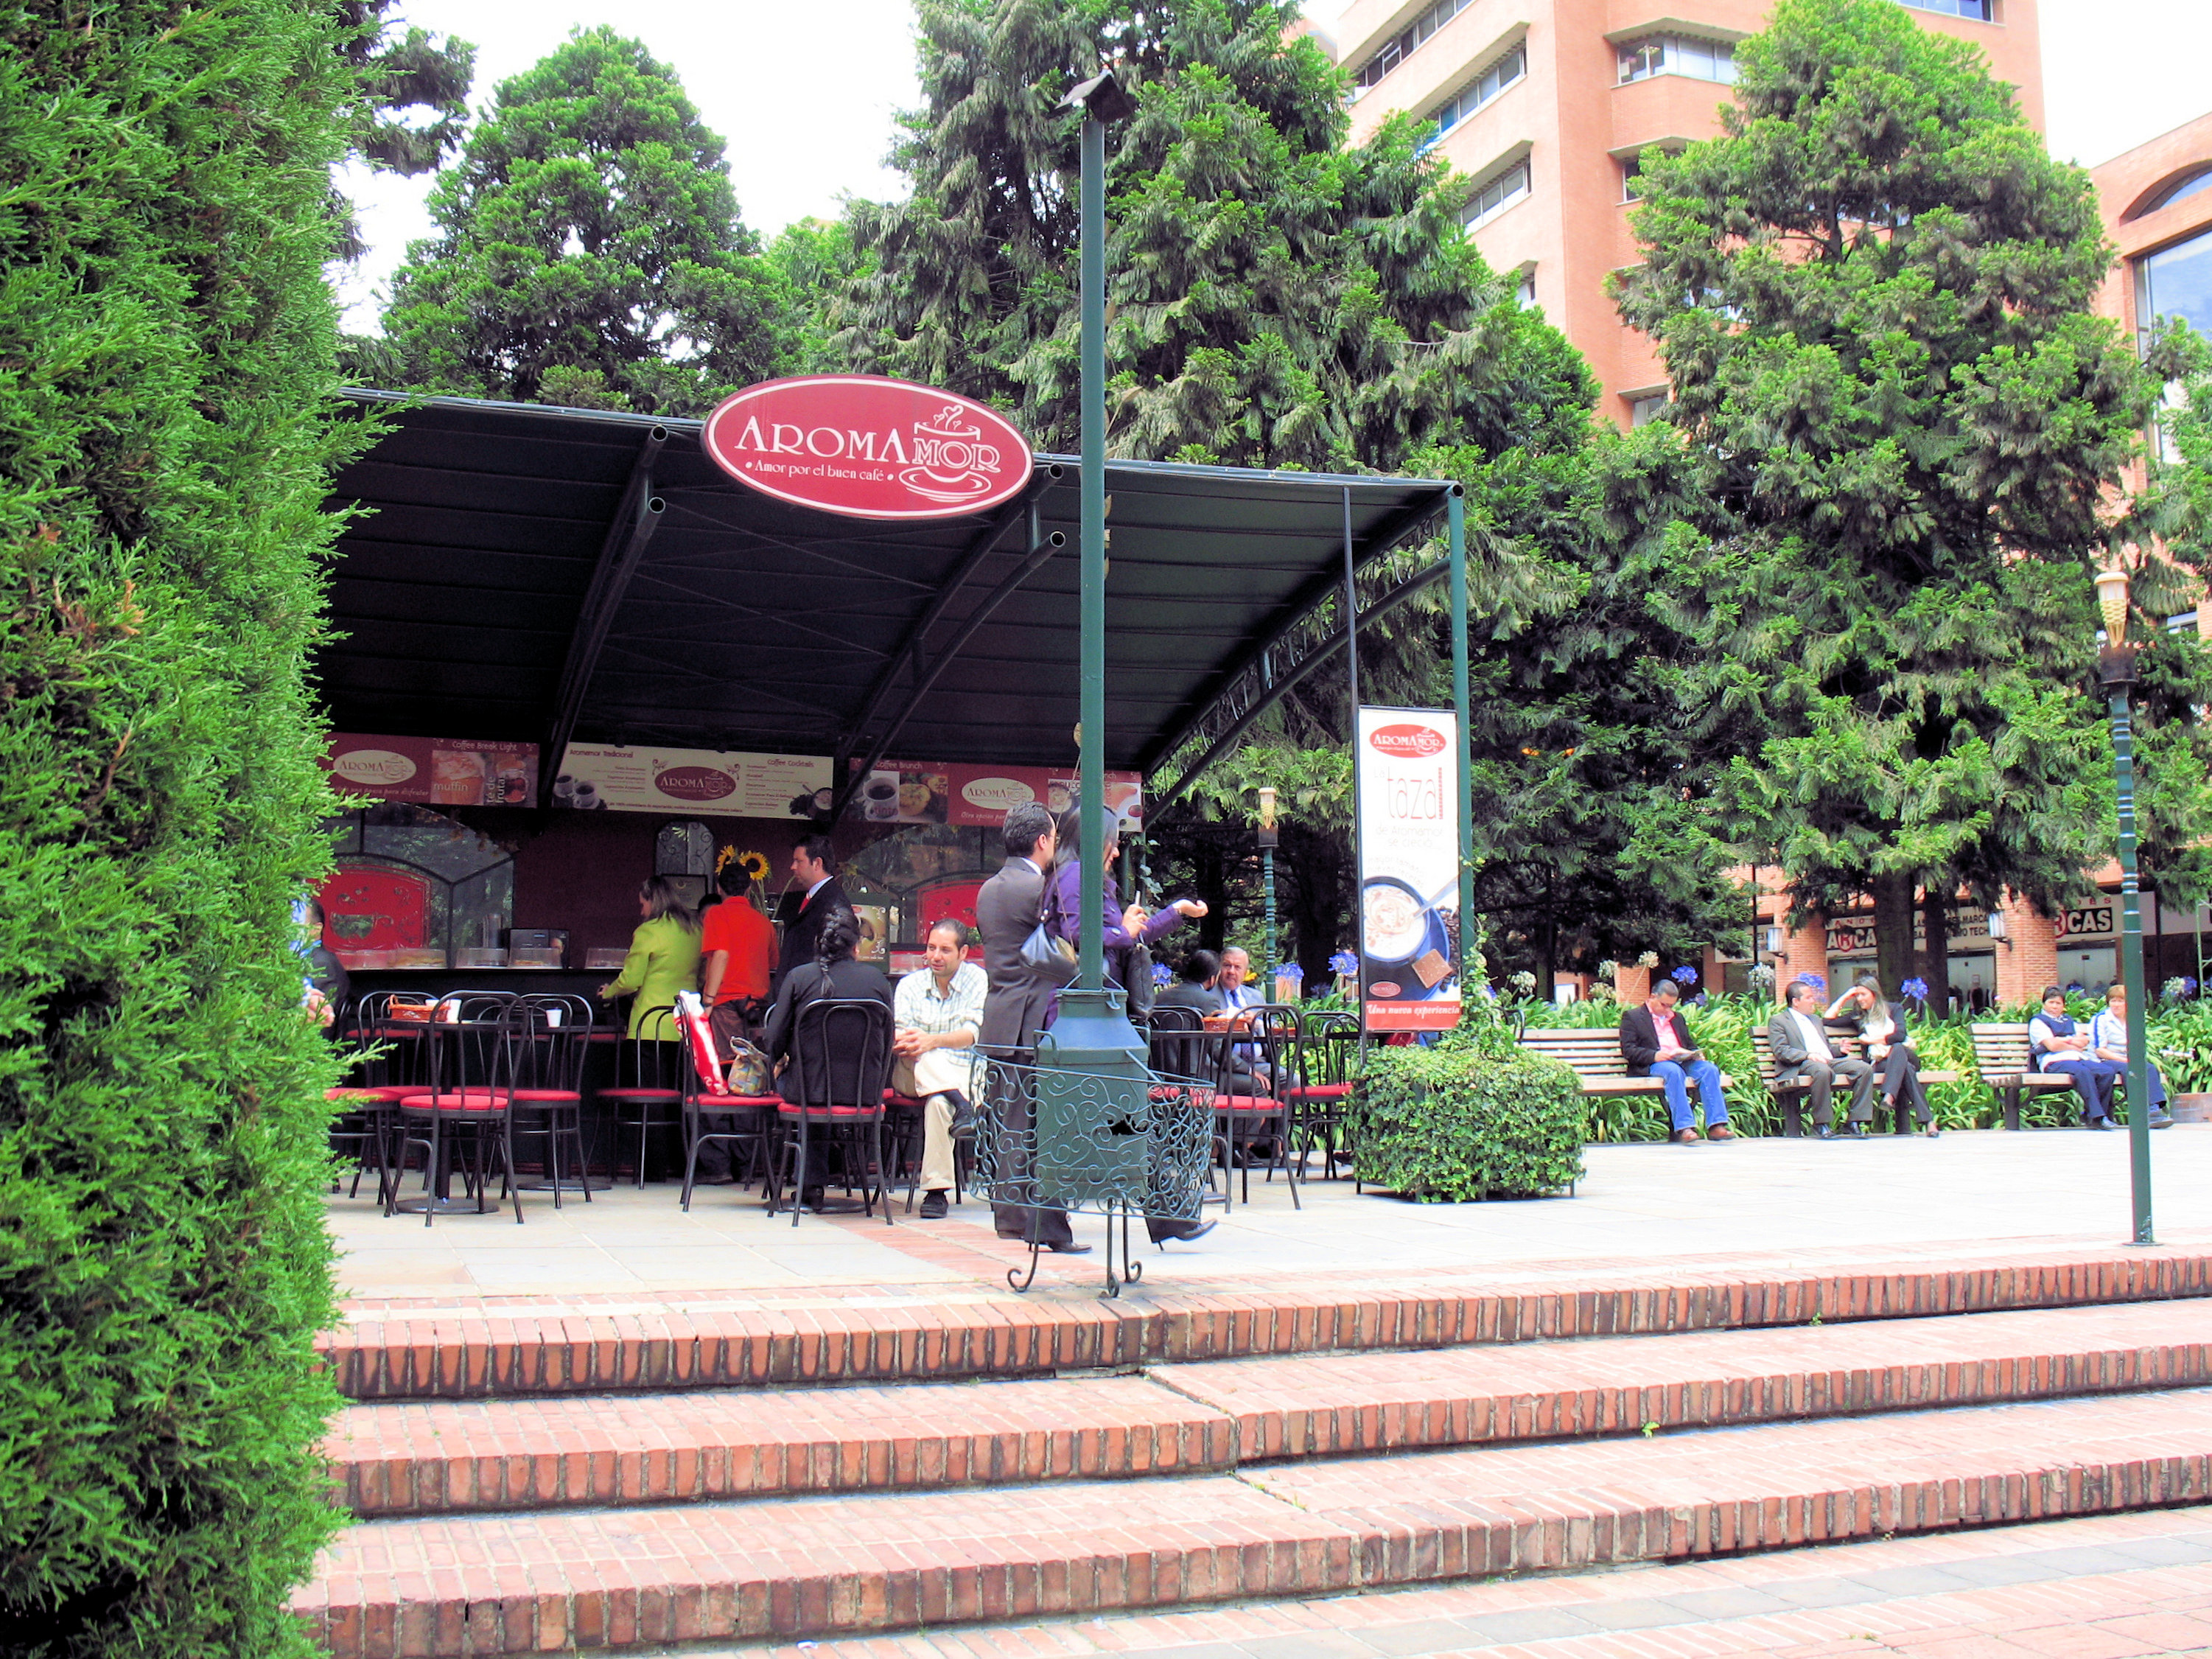 Bogotá has some of the best sectors for city living